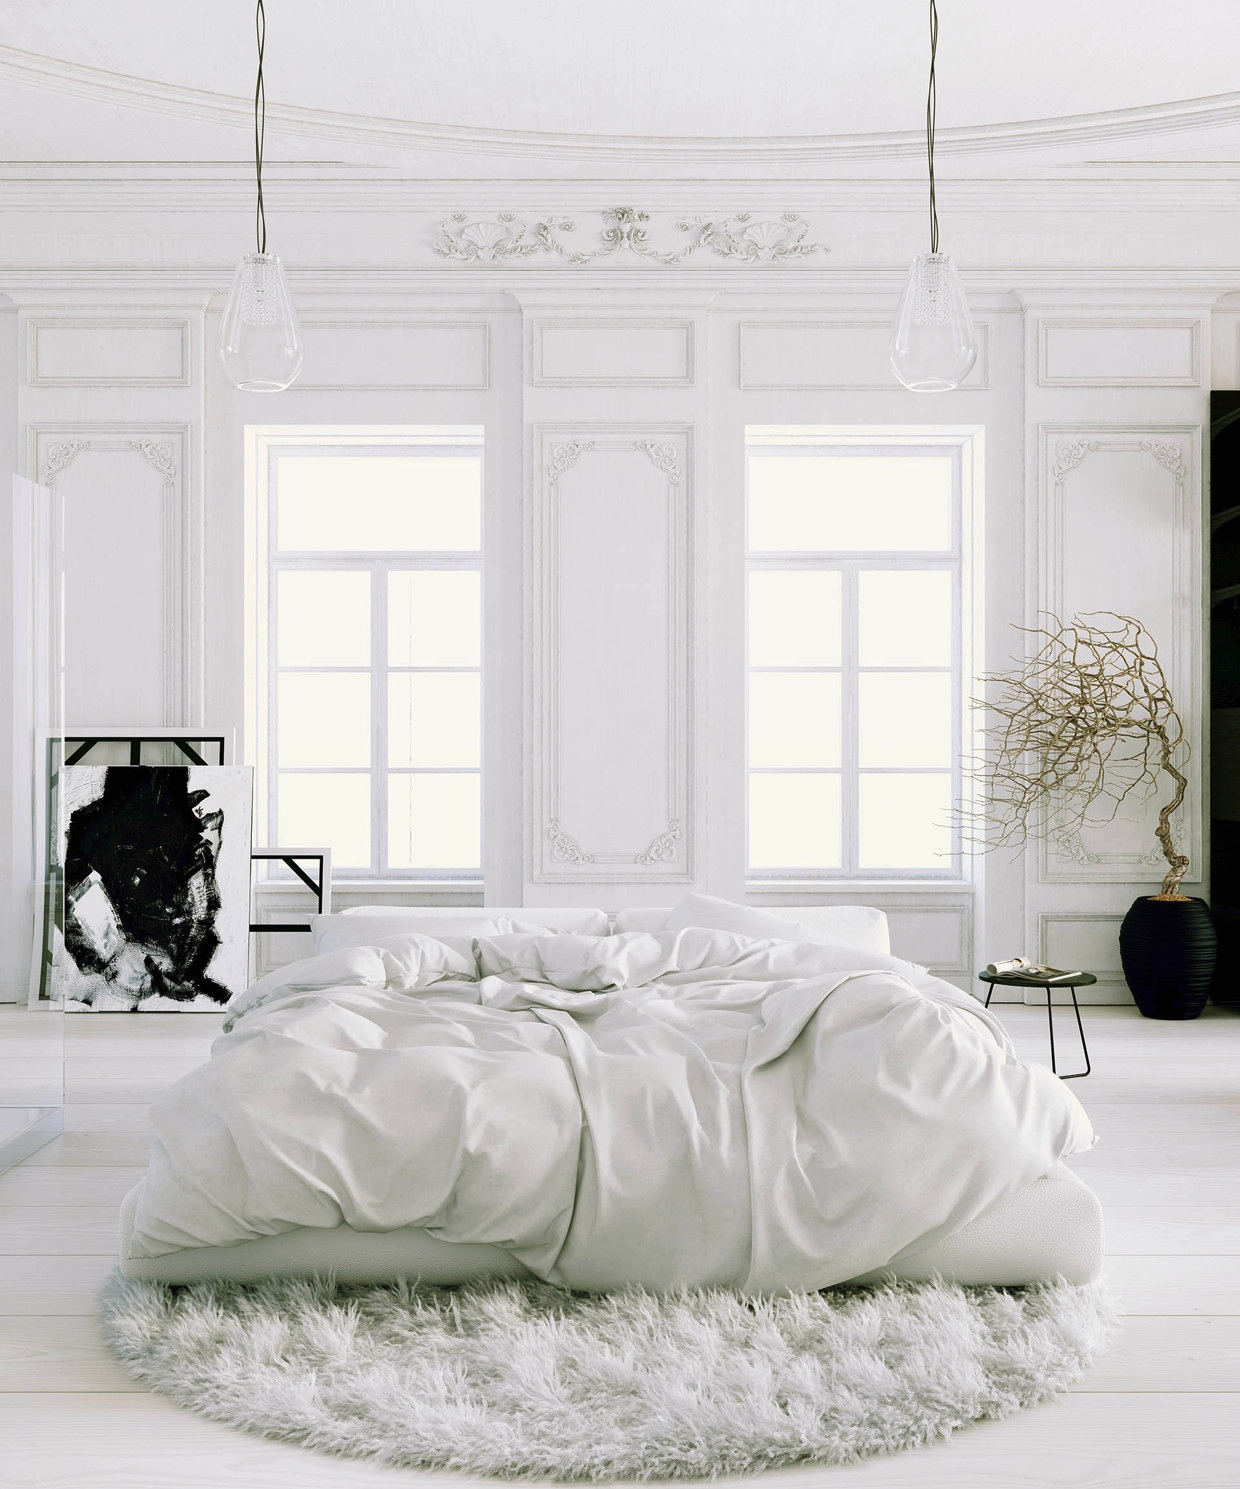 Bedroom Interior Design: 41 White Bedroom Interior Design Ideas & Pictures